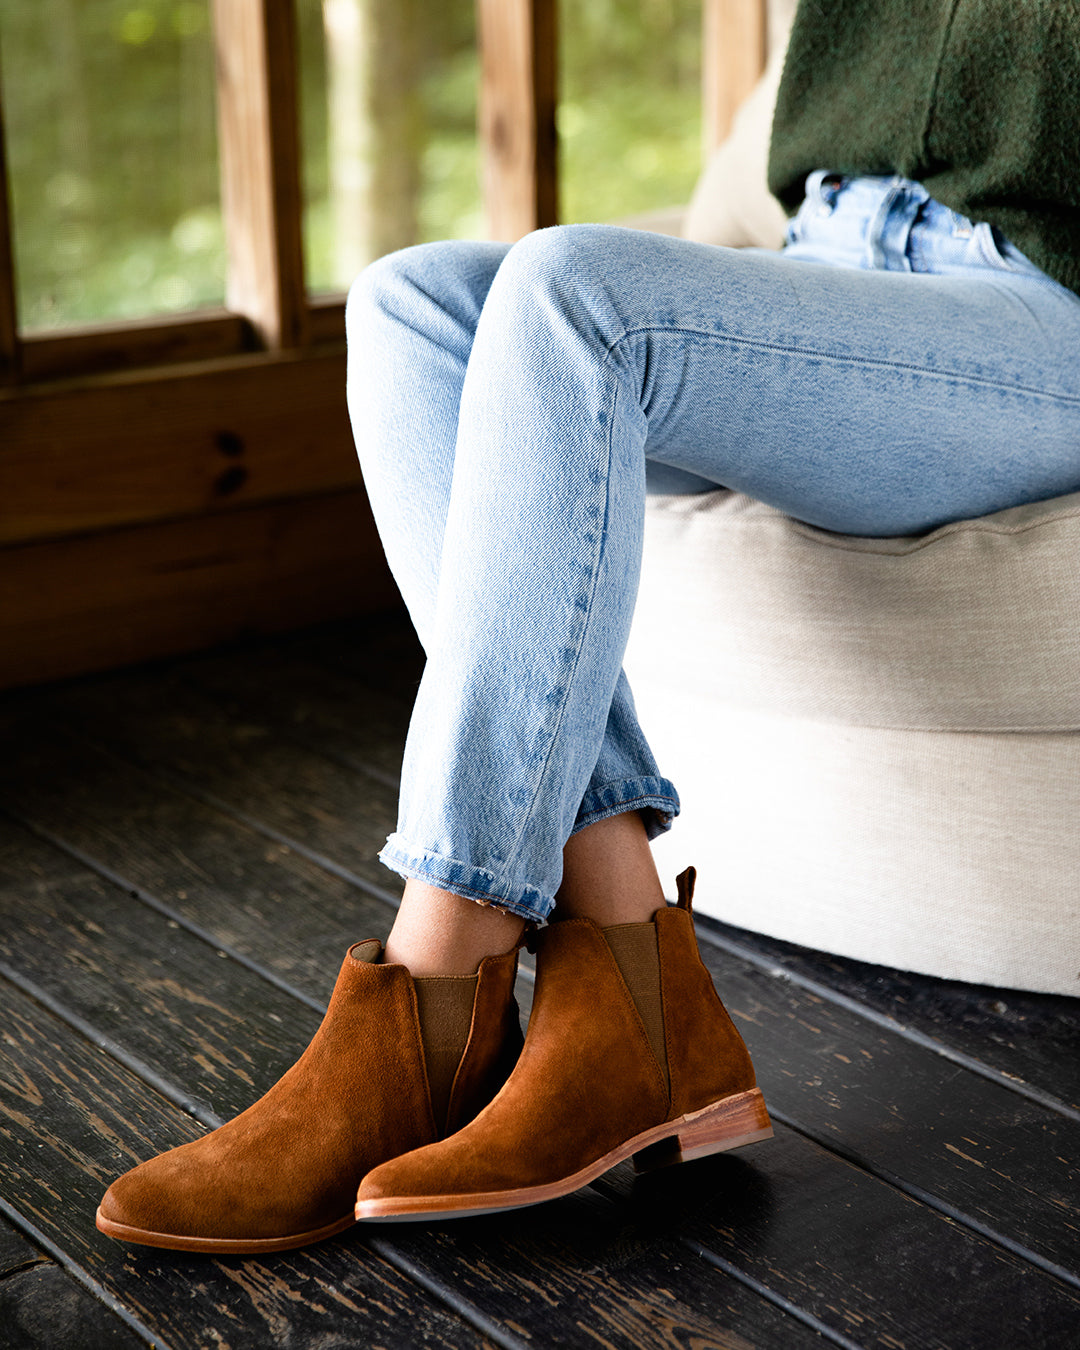 Nisolo Women's Chelsea Boot in Nutmeg Lifestyle Image